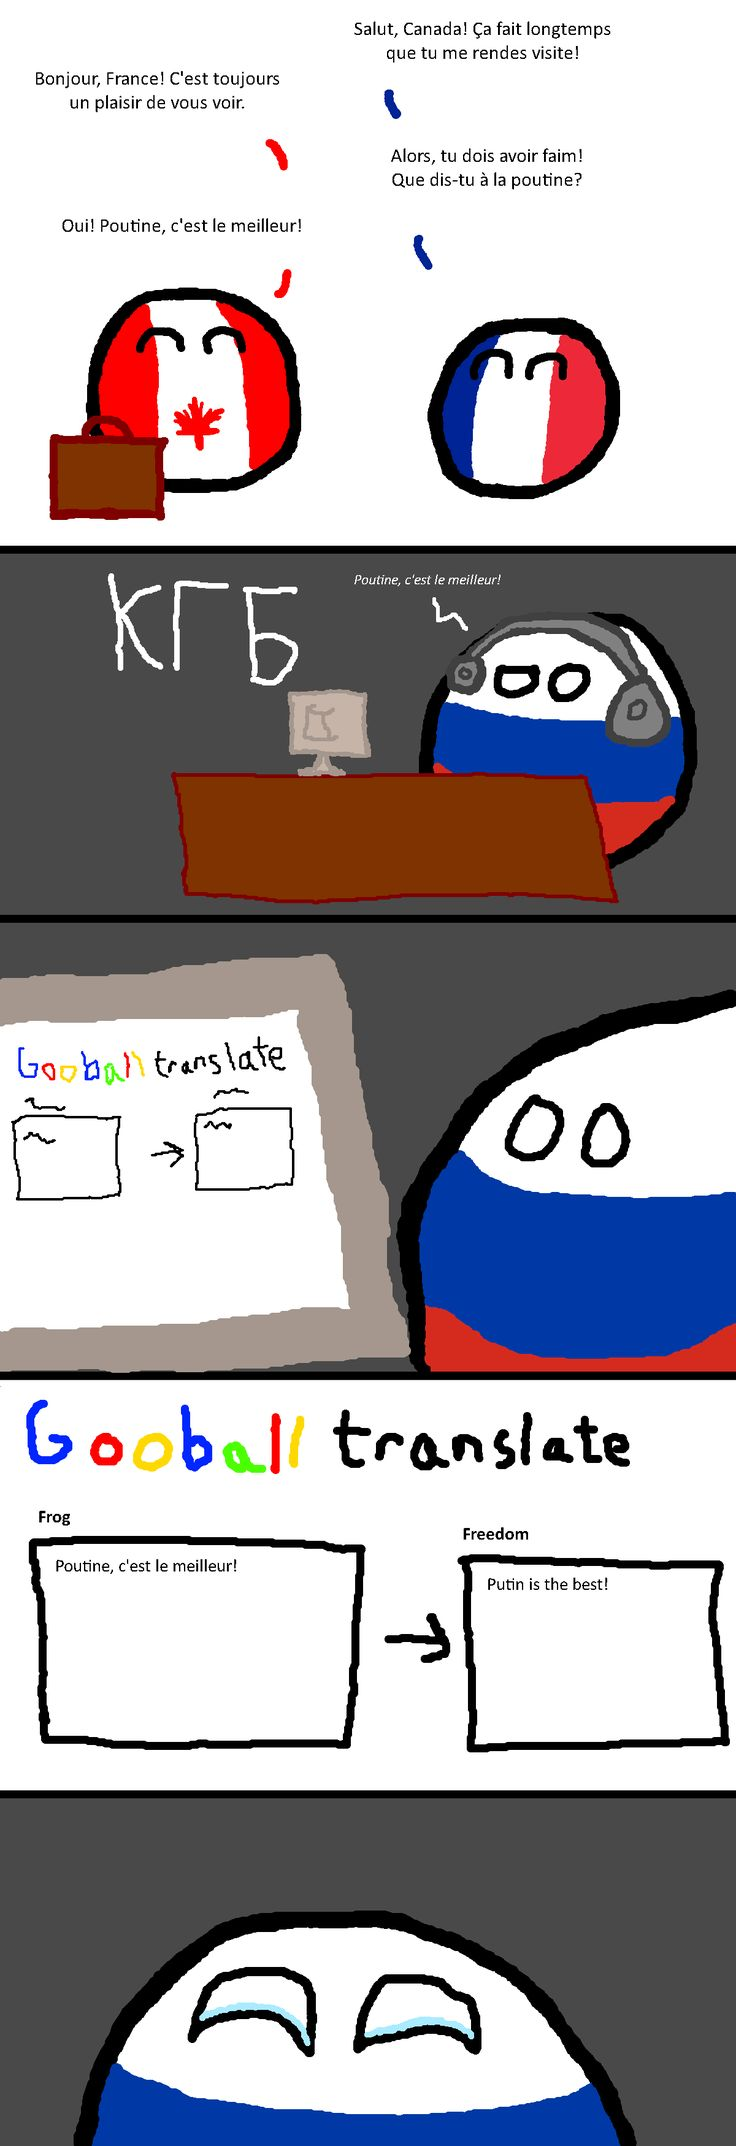 "Poutine is yummy ""Found in translation"" (Russia, Canada, France) #polandball #countryball #flagball << For those who don't know, poutine is a canadian dish with french fries, cheese and sauce and it's delicious"